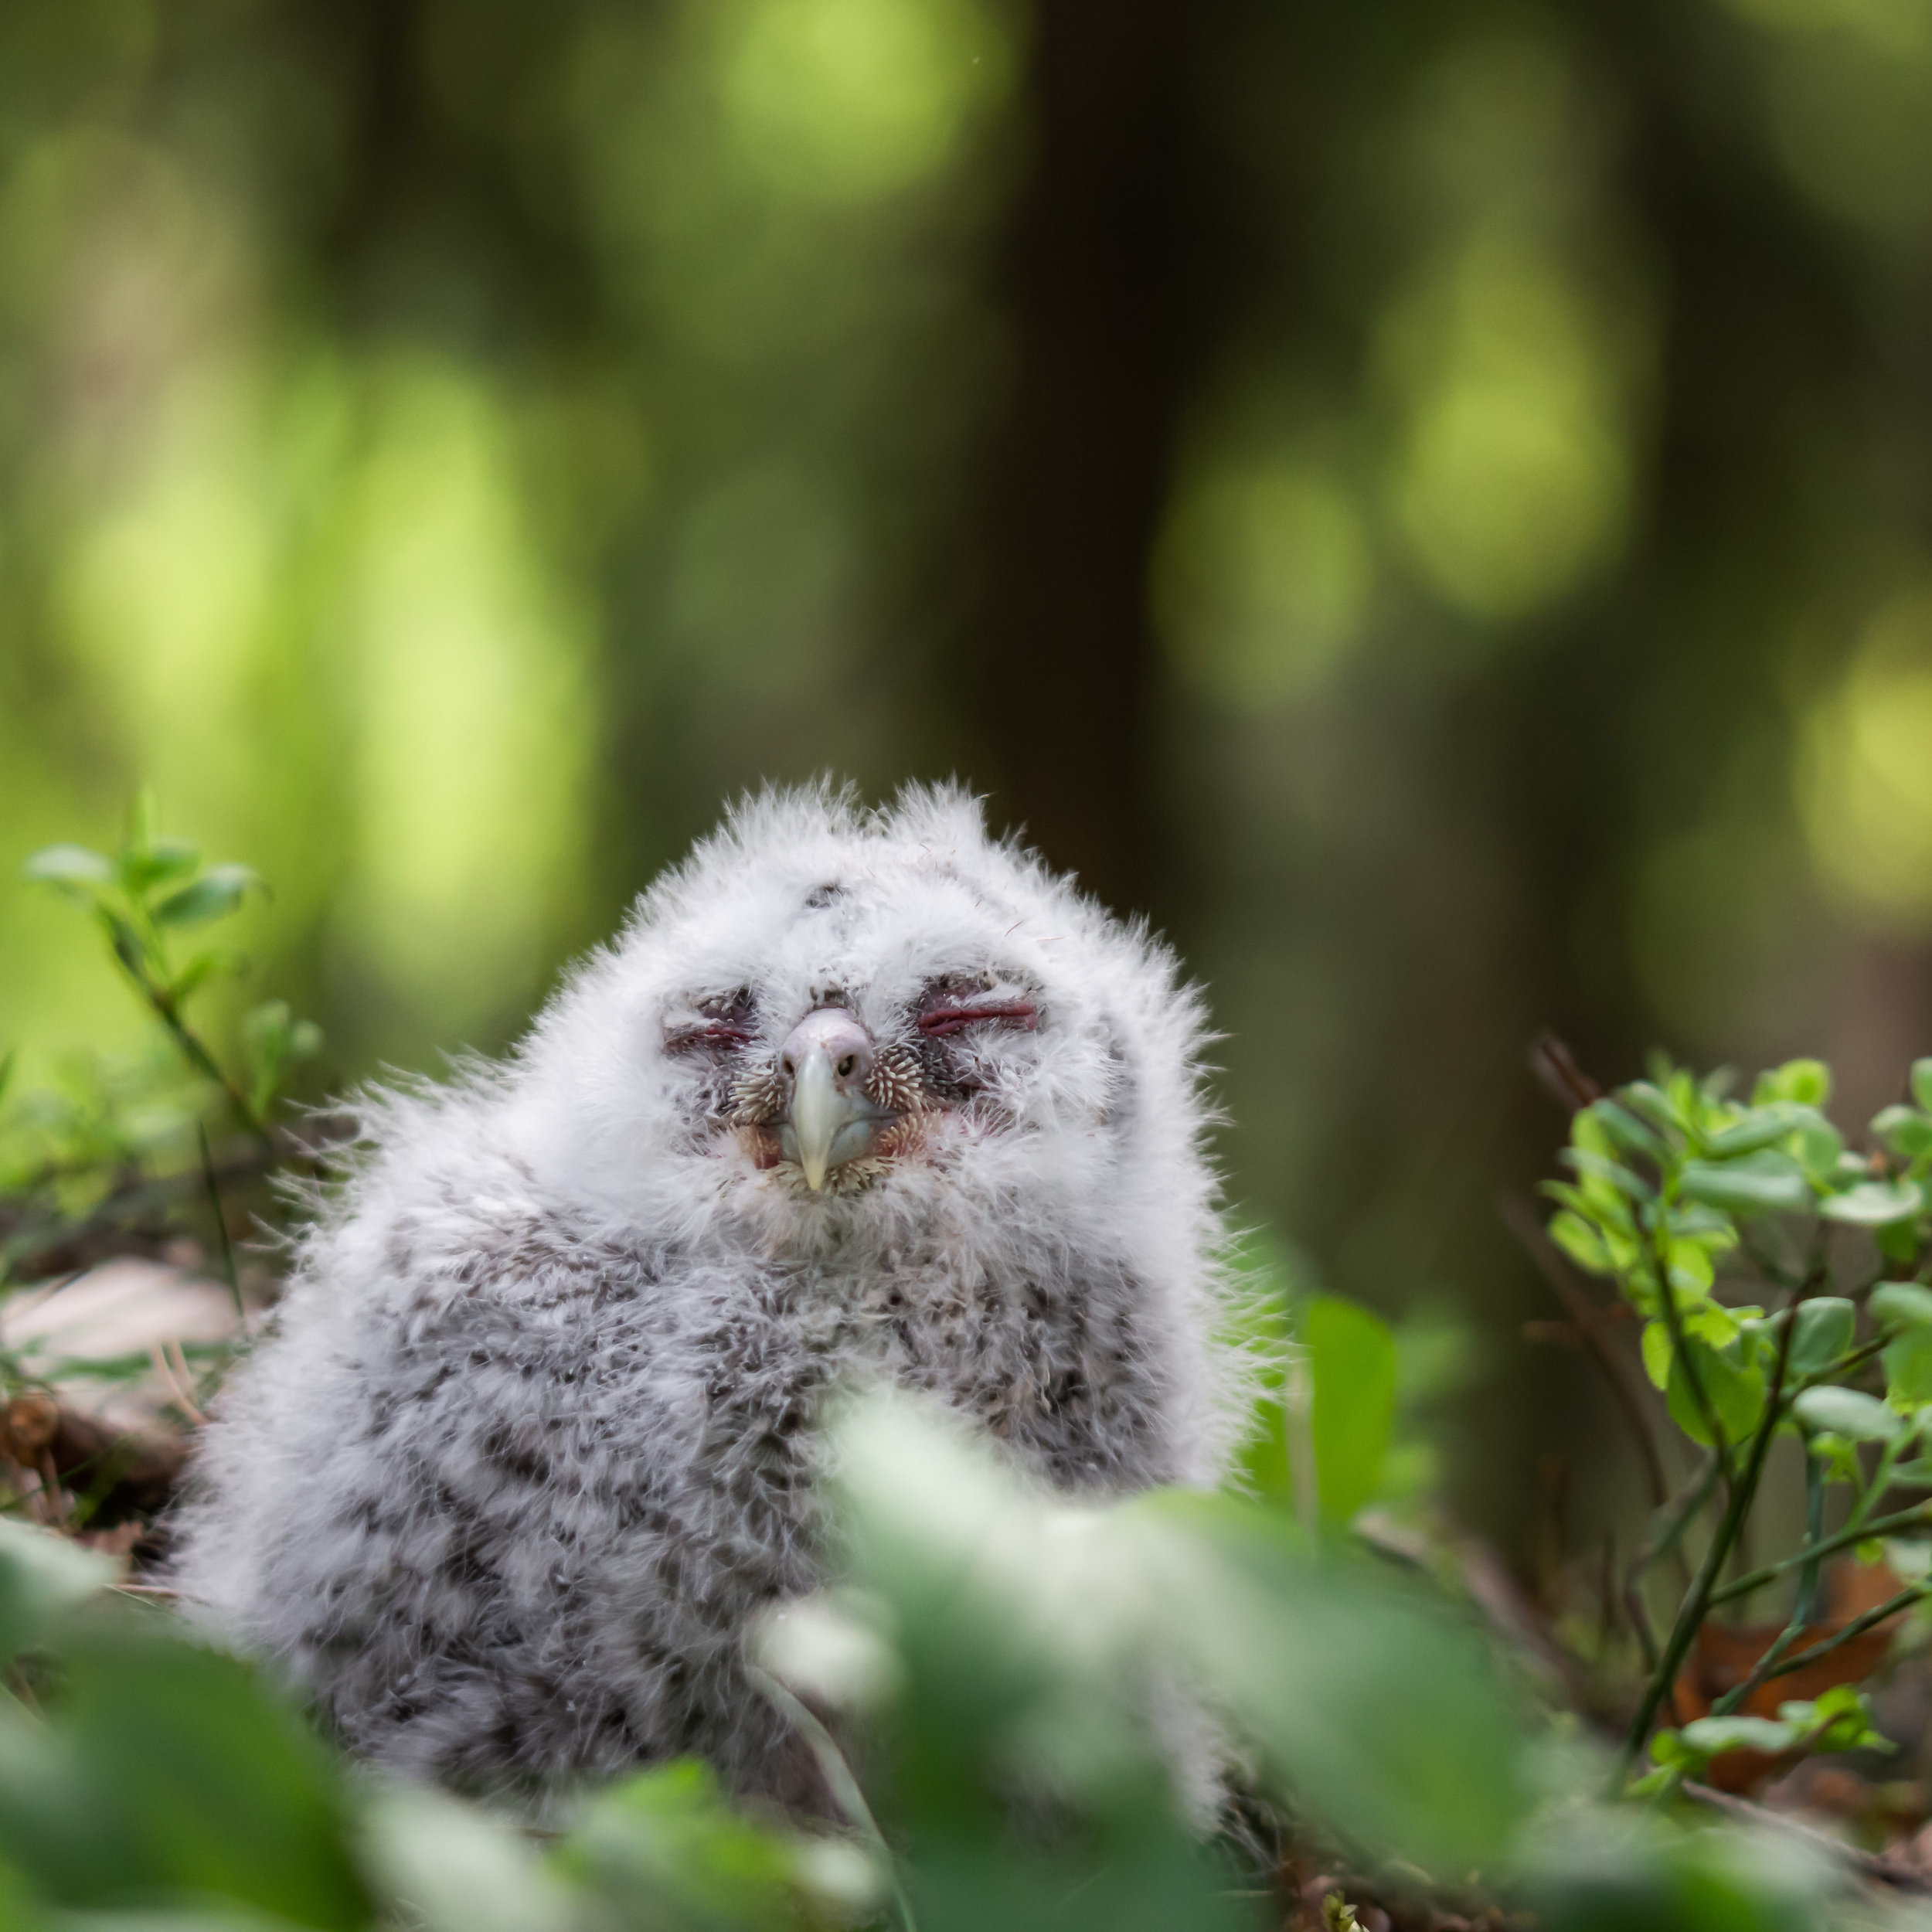 A Tawny owl baby I photographed while I spent the day with local bird ringers.